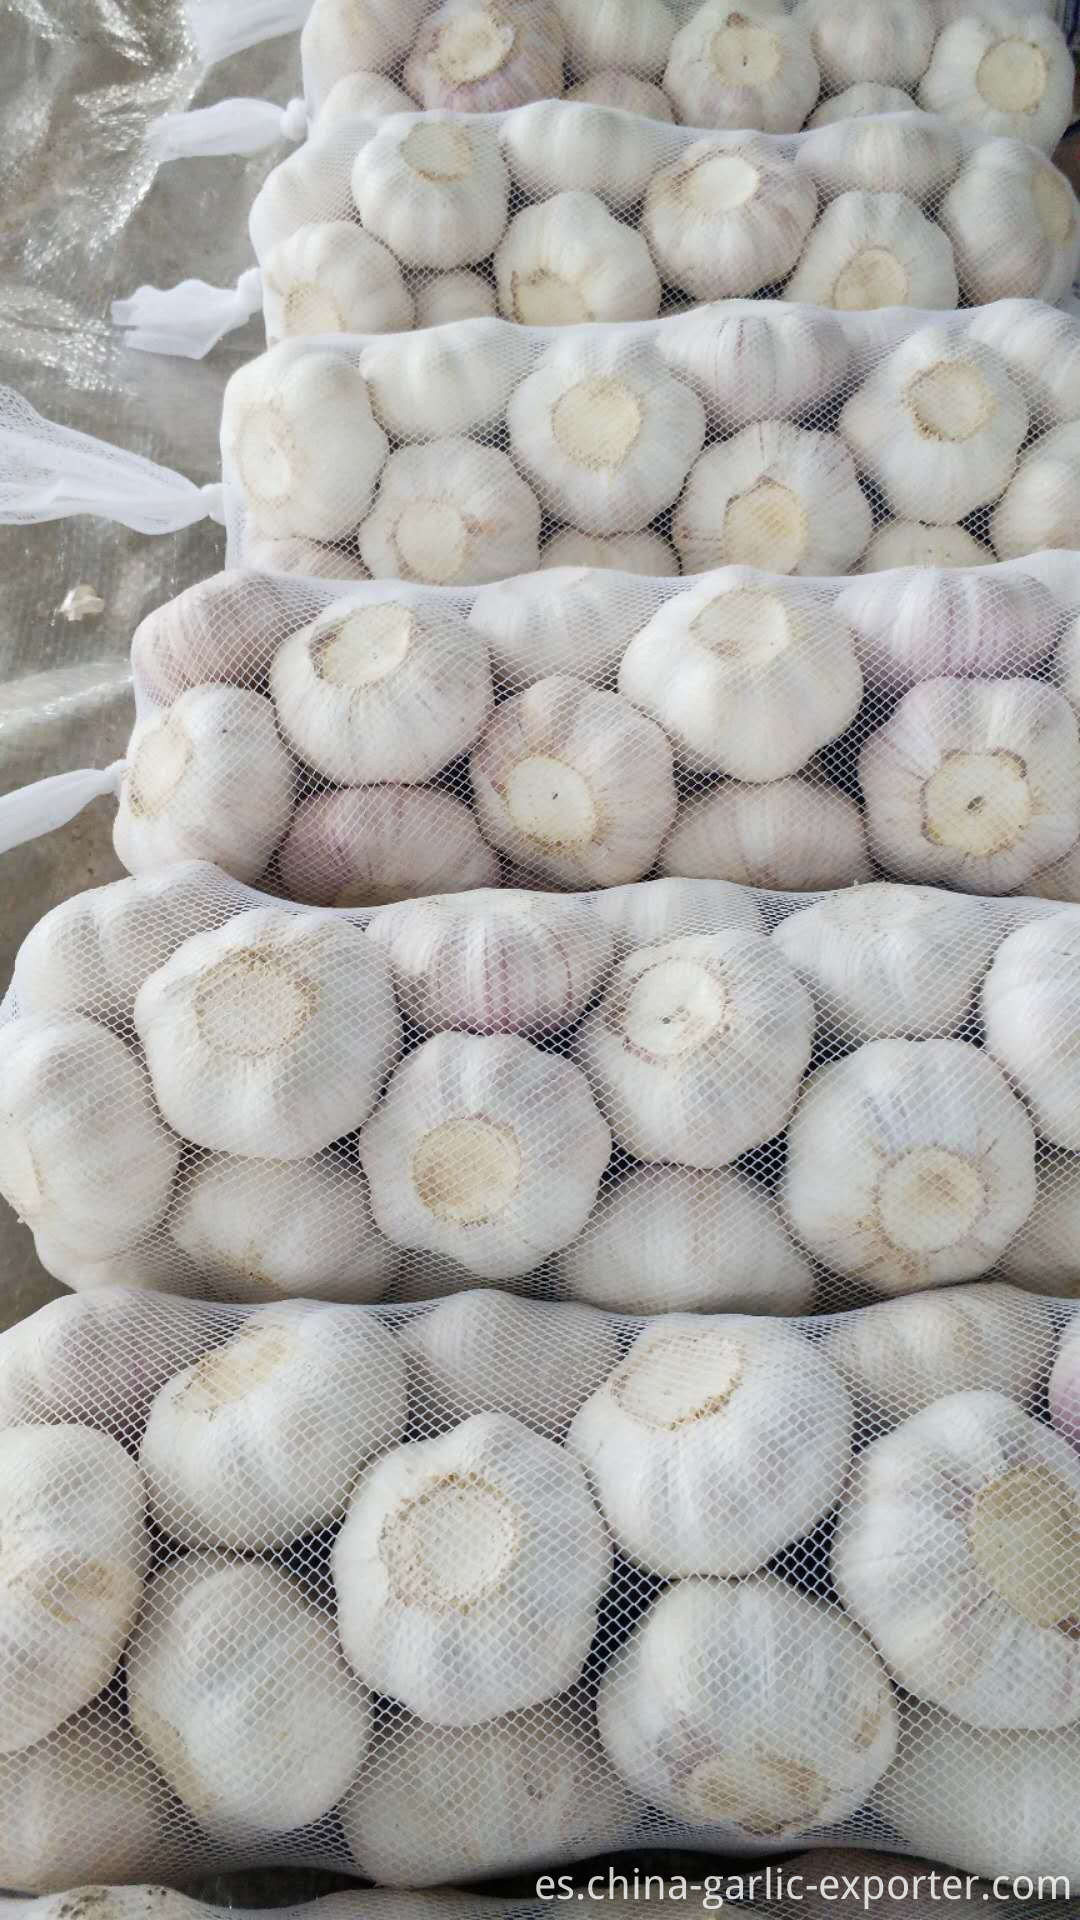 Jin Xiang New Crop Garlic Price Hot Sales